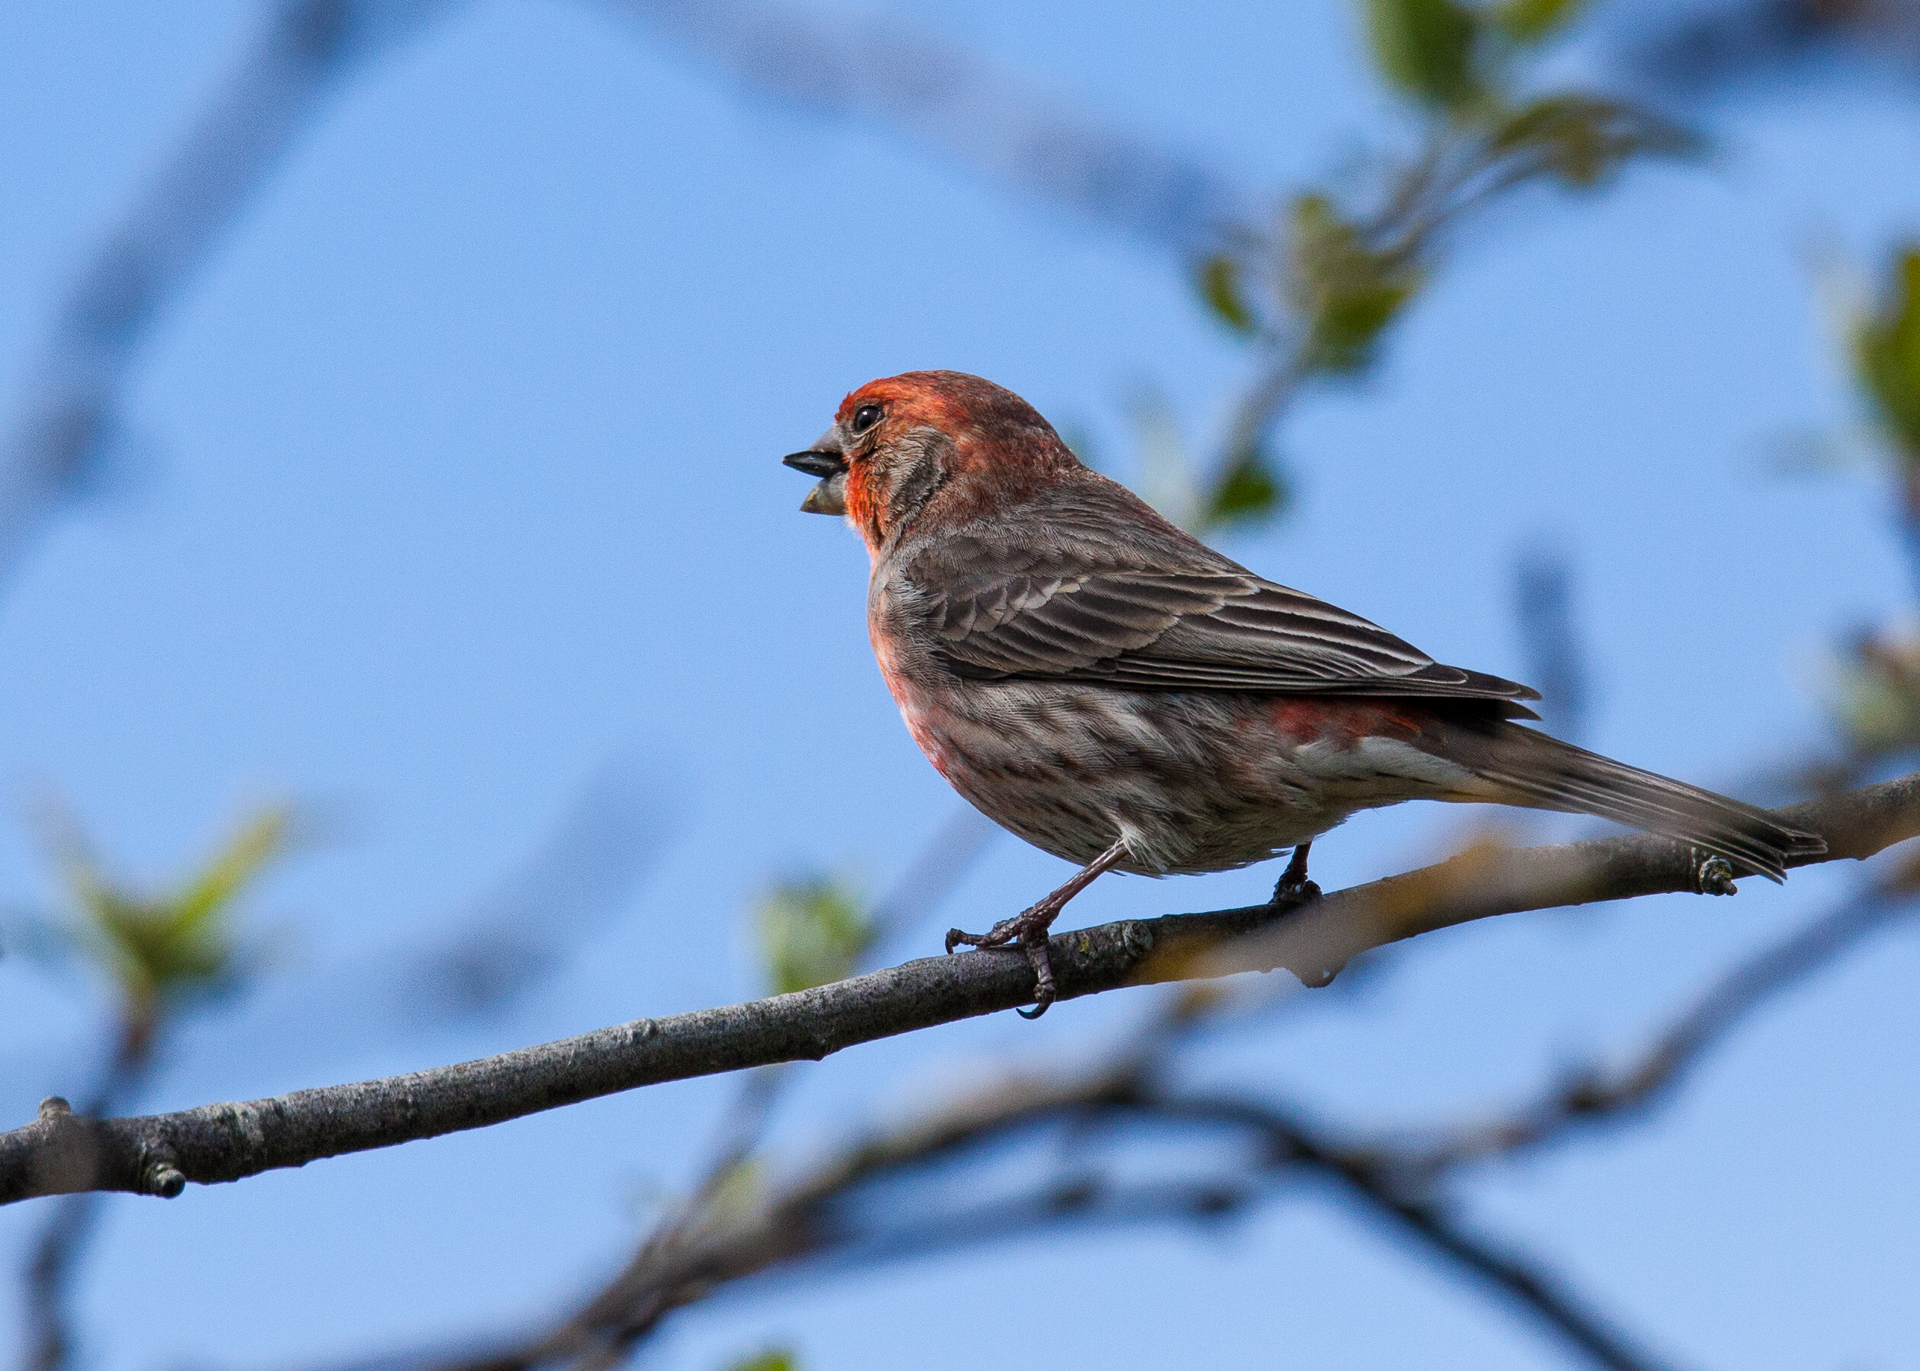 I think this is a Purple Finch, but I'm not sure. This was shot handheld at 600mm, which turned out pretty good results, if I do say so myself. Of course, the light was pretty good, which helped.